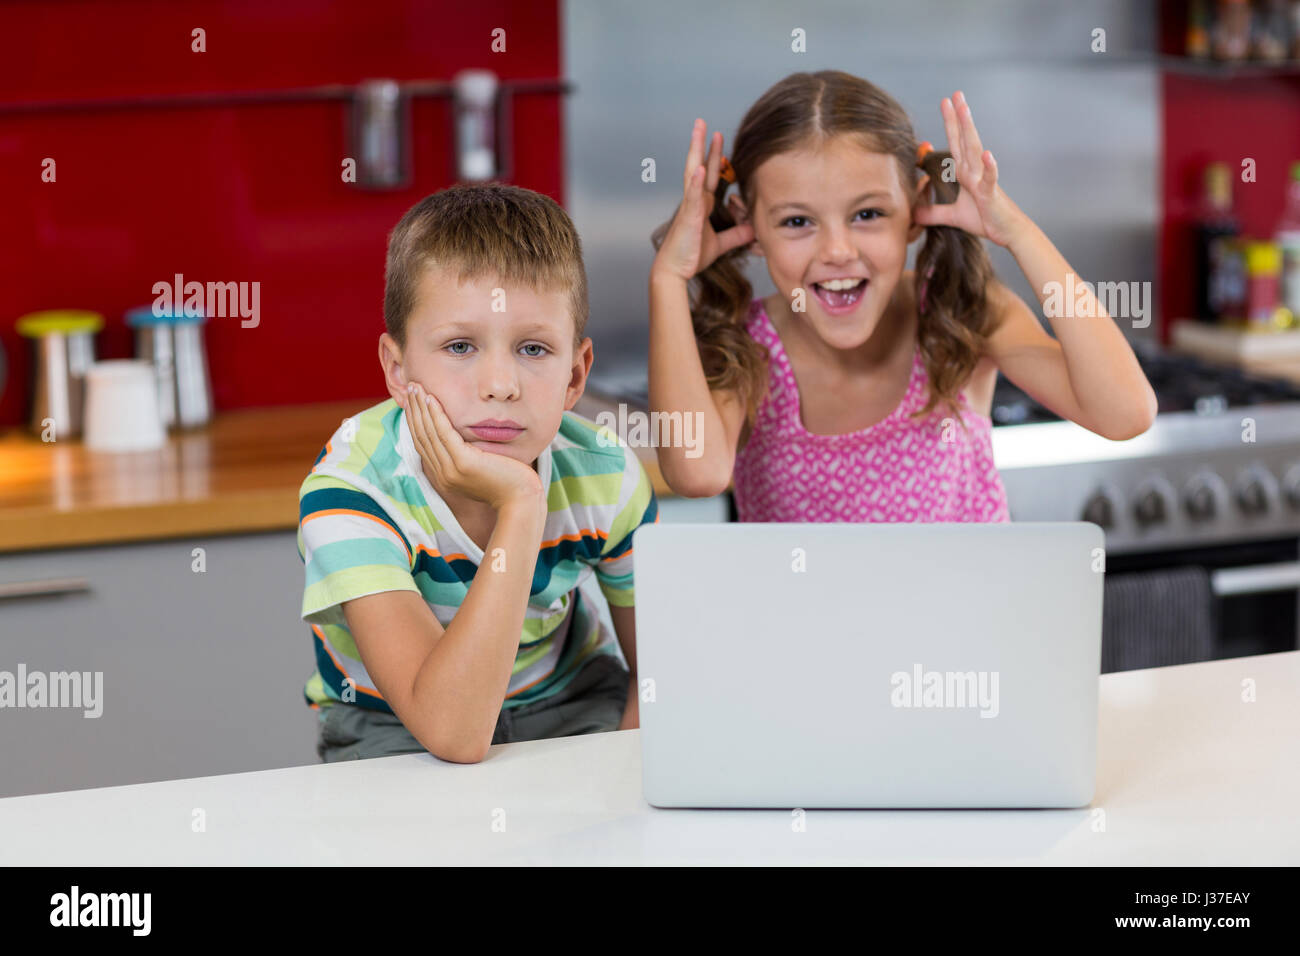 Girl teasing his brother in kitchen at home - Stock Image